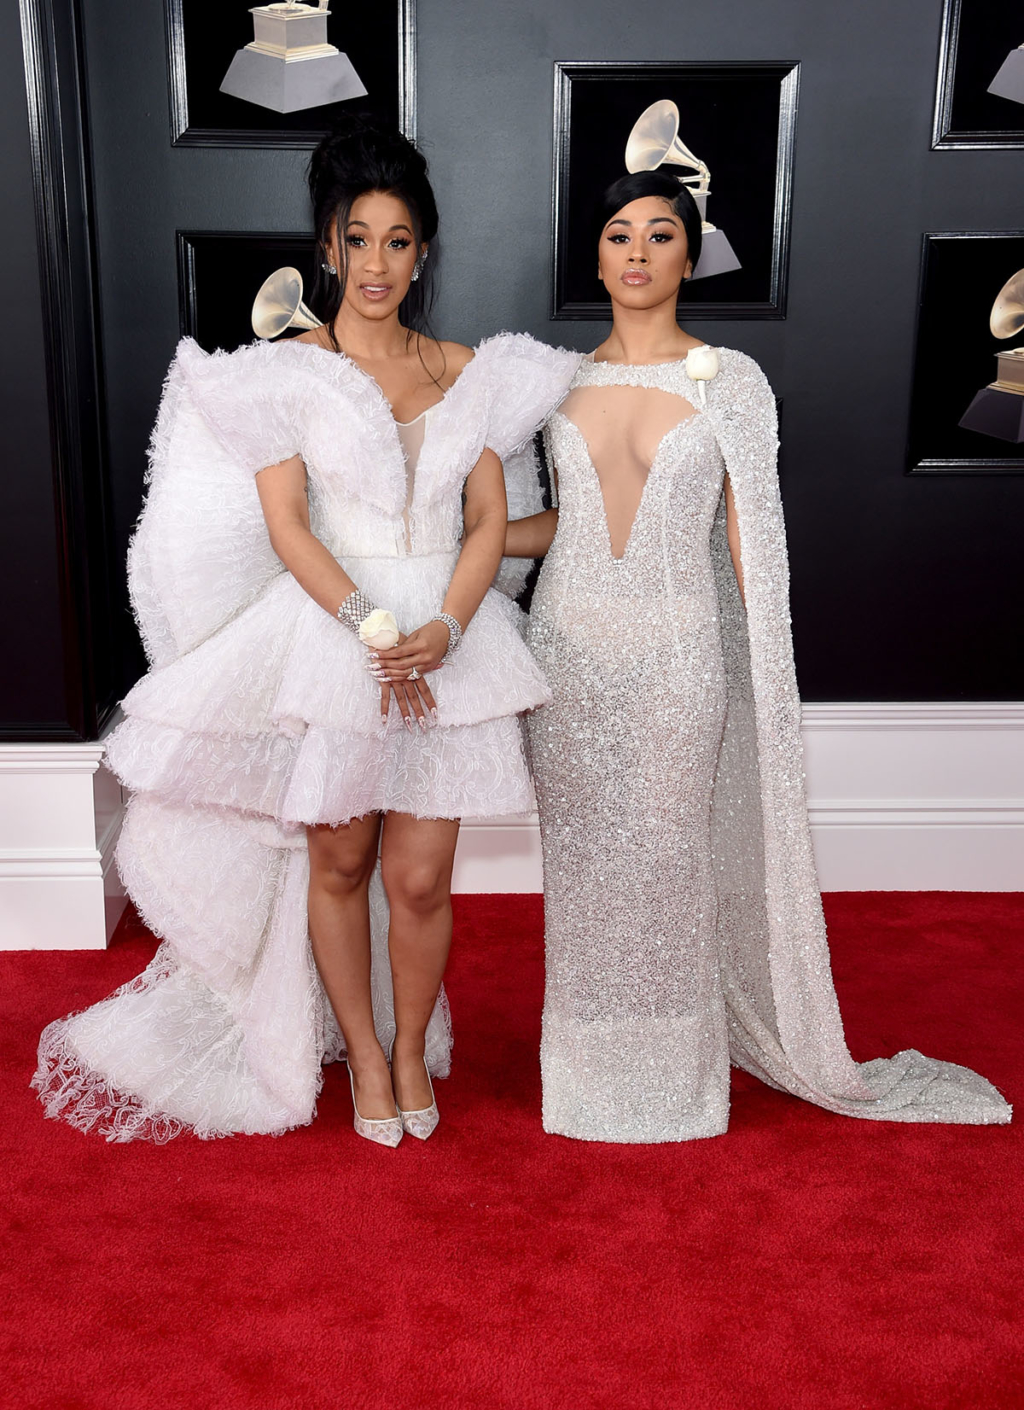 Cardi B L And Sister Hennessy Carolina Attend The 60th